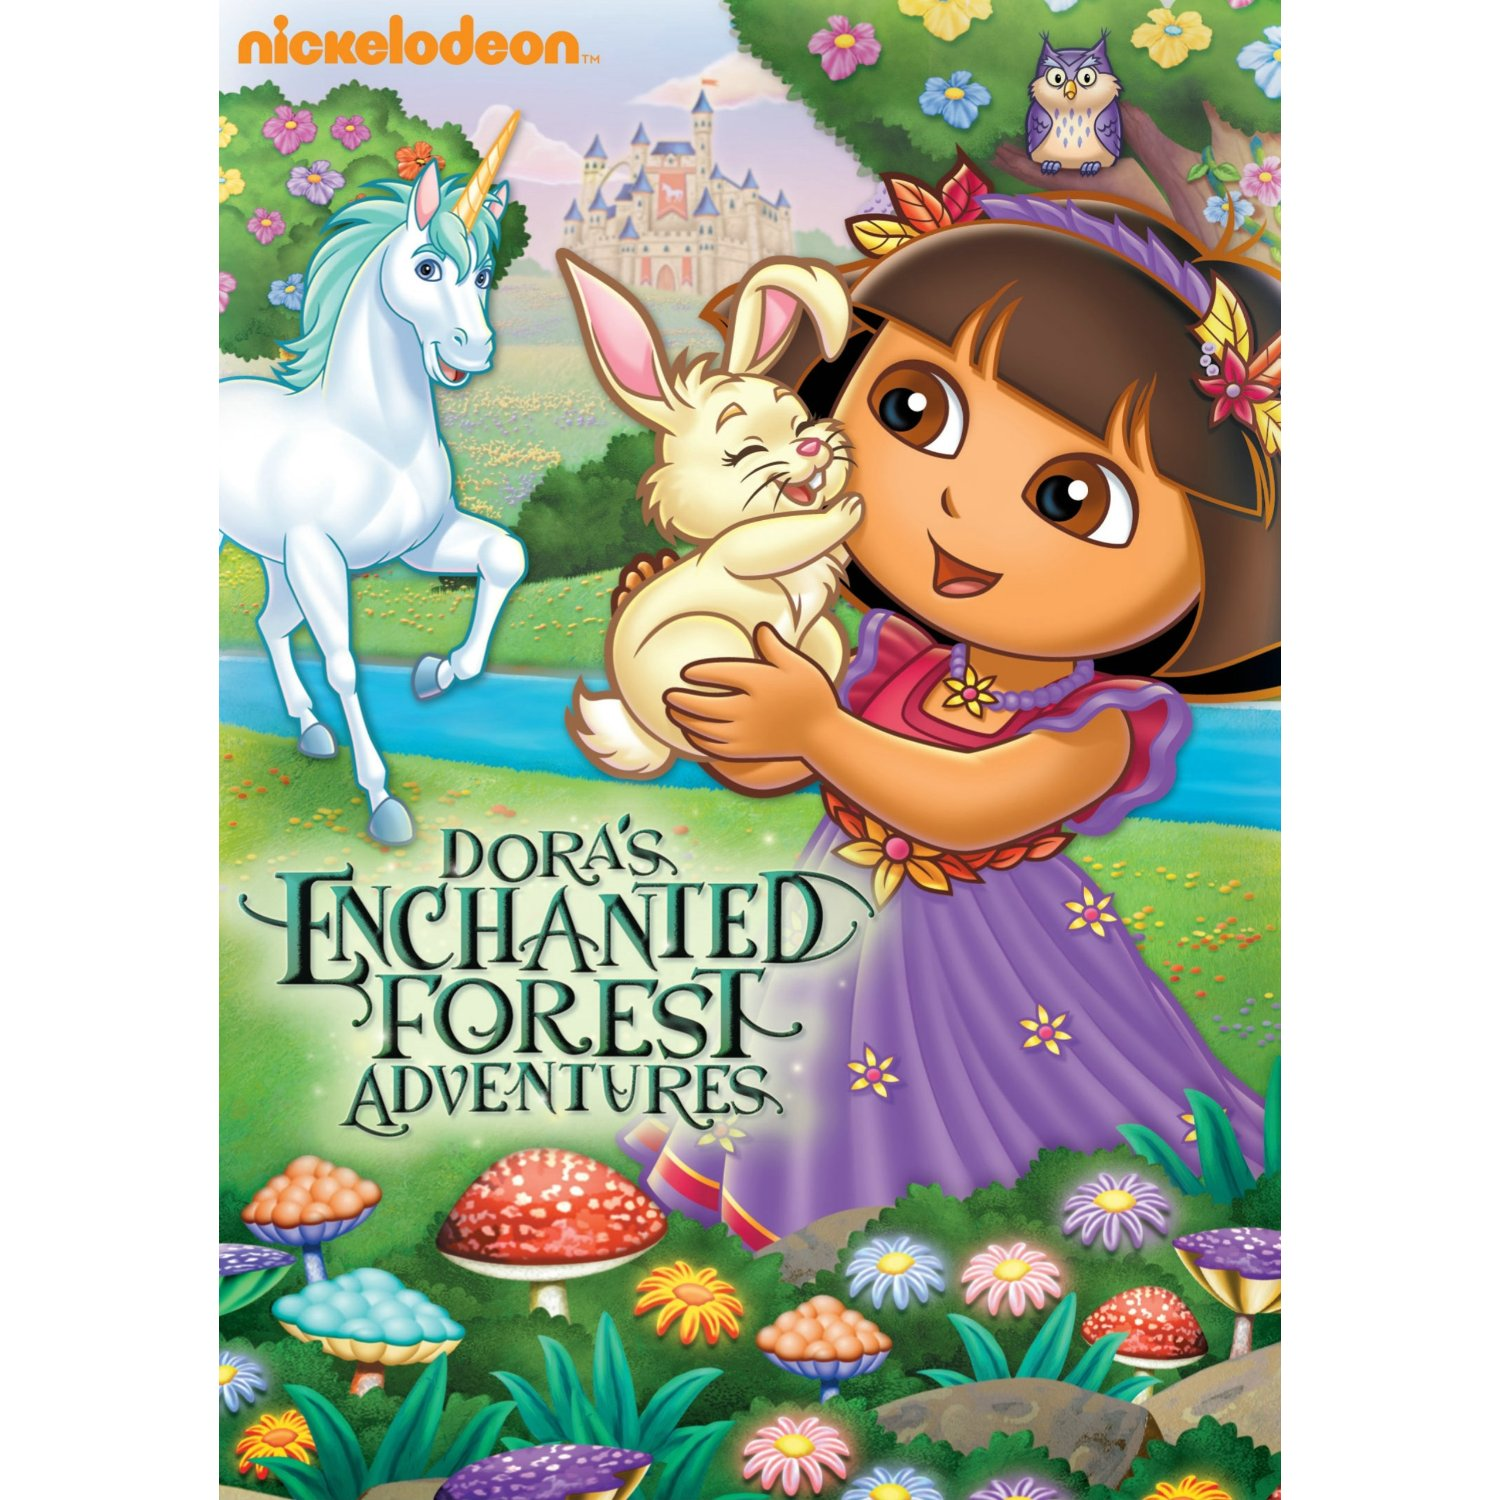 Dora the Explorer: Enchanted Forest Adventures DVD Review and Giveaway